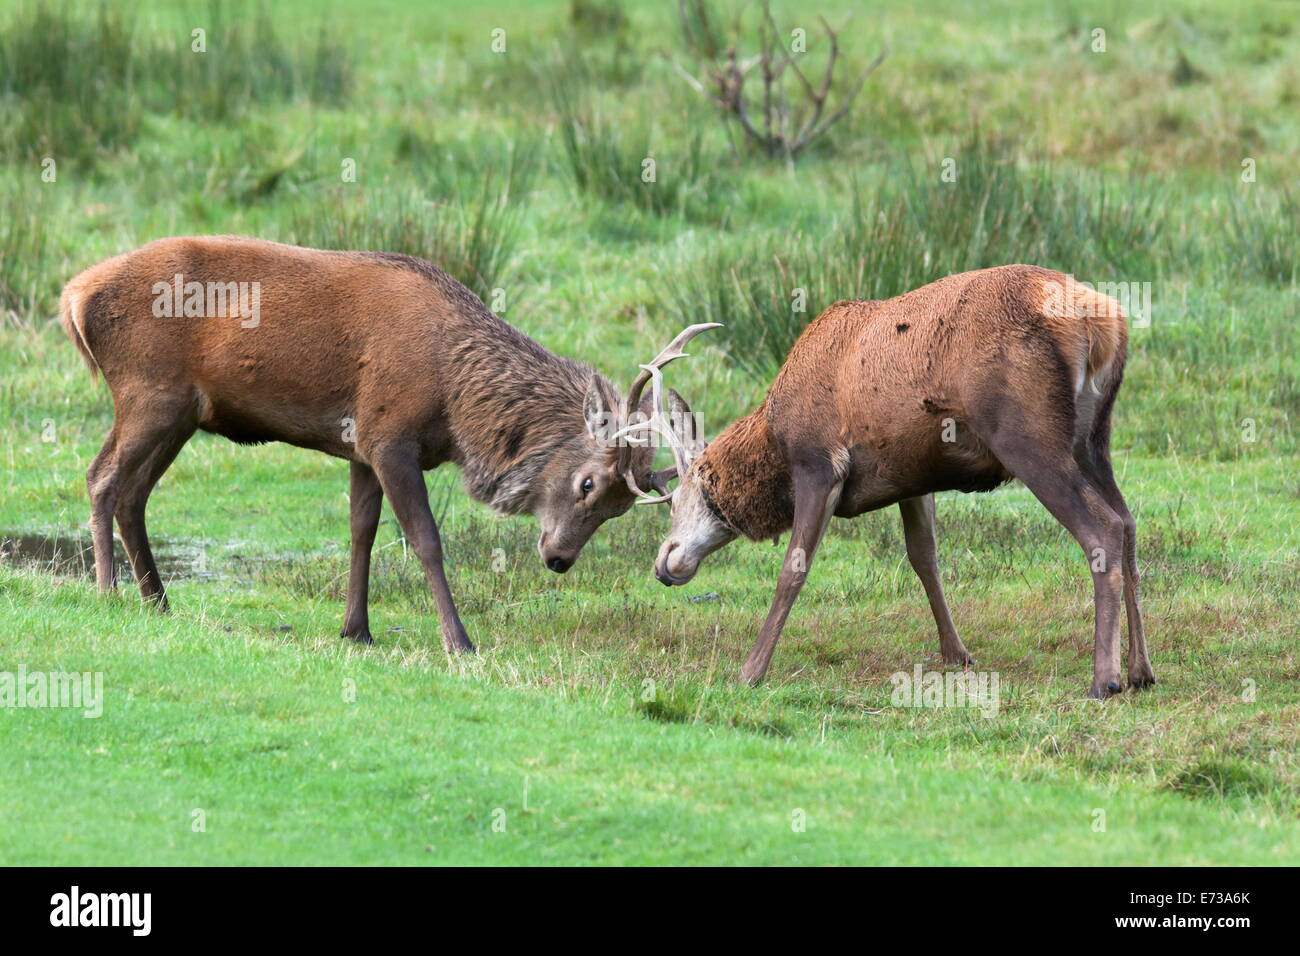 Red deer stags sparring (Cervus elaphus), Arran, Scotland, United Kingdom, Europe - Stock Image